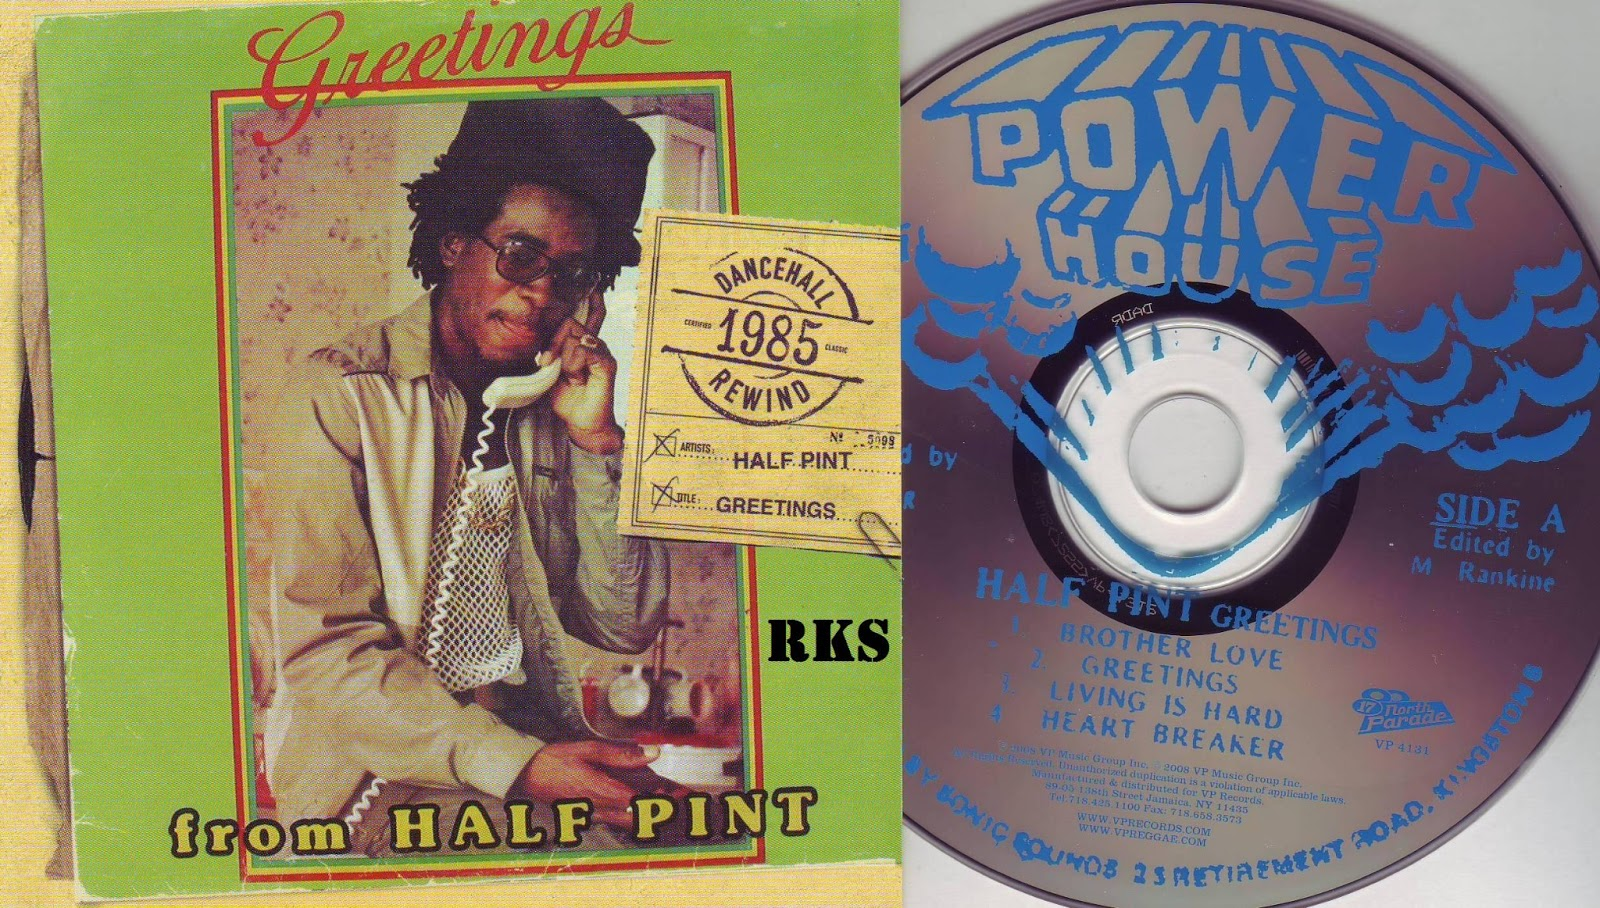 Compartilhandoreggaespot half pint half pint greetings m4hsunfo